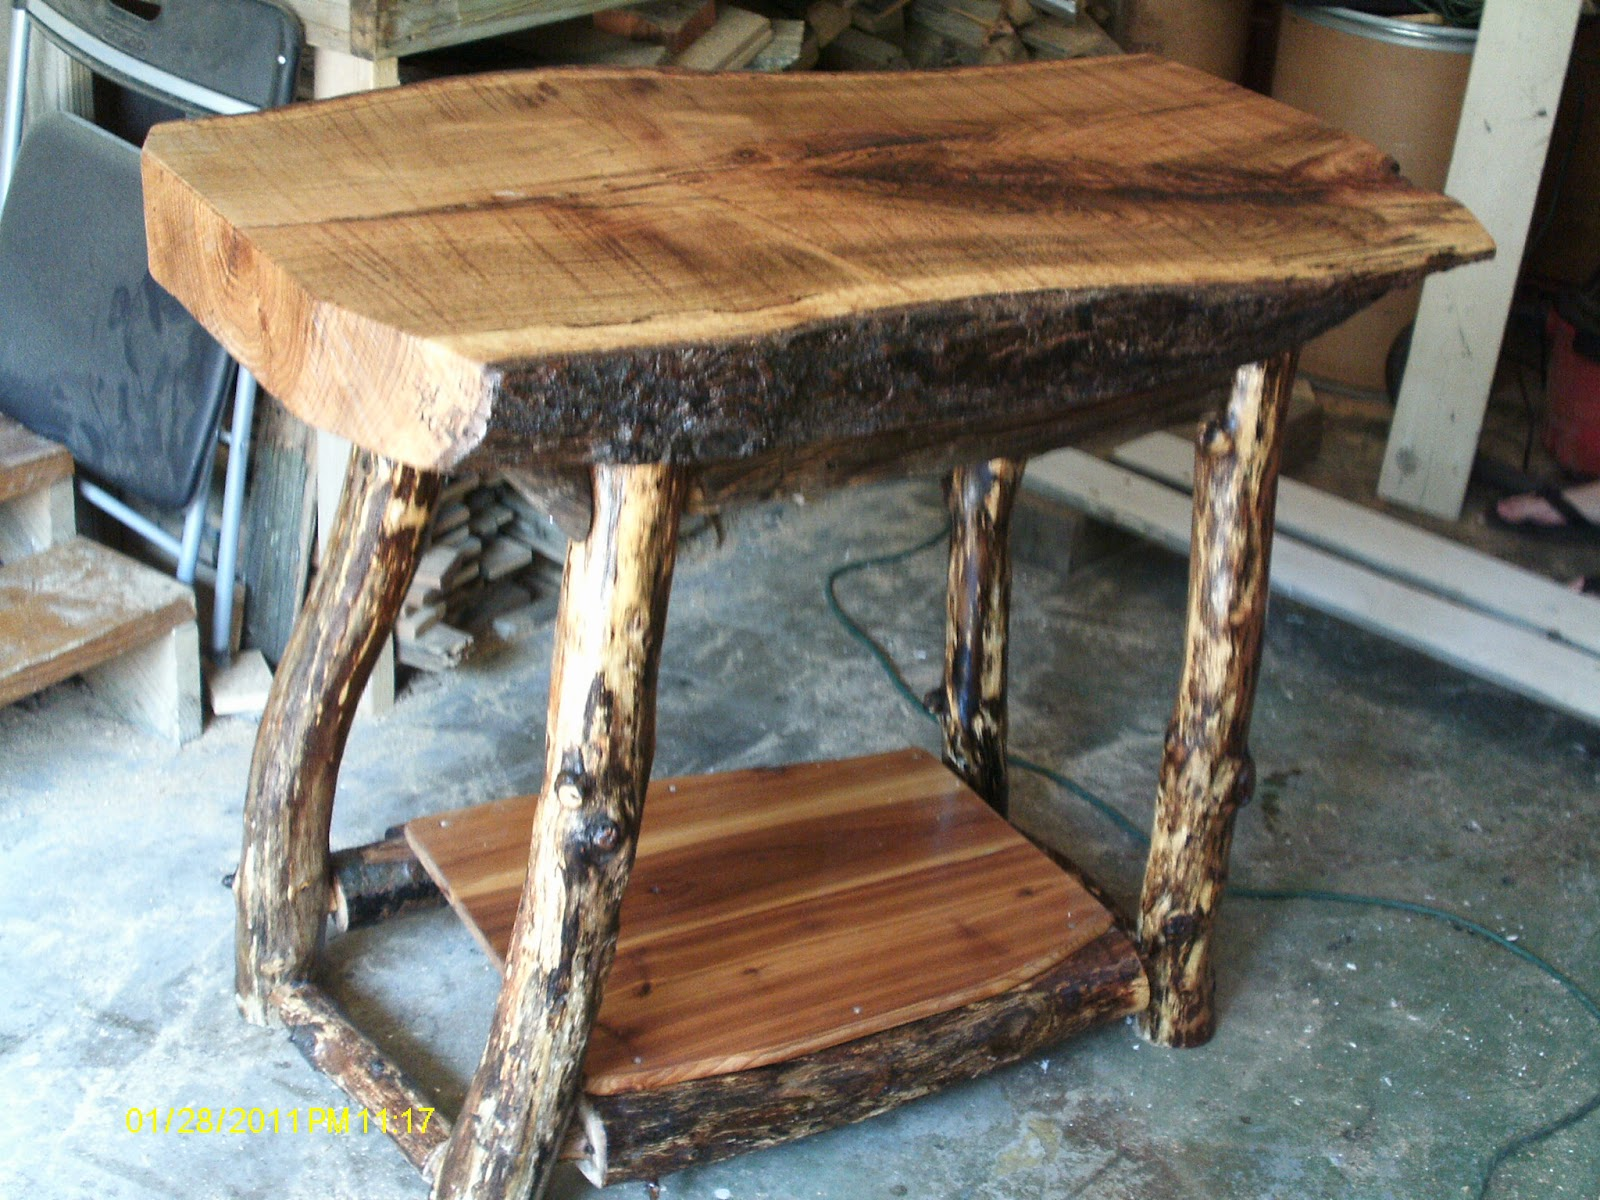 Handmade Rustic Log Furniture June 2012